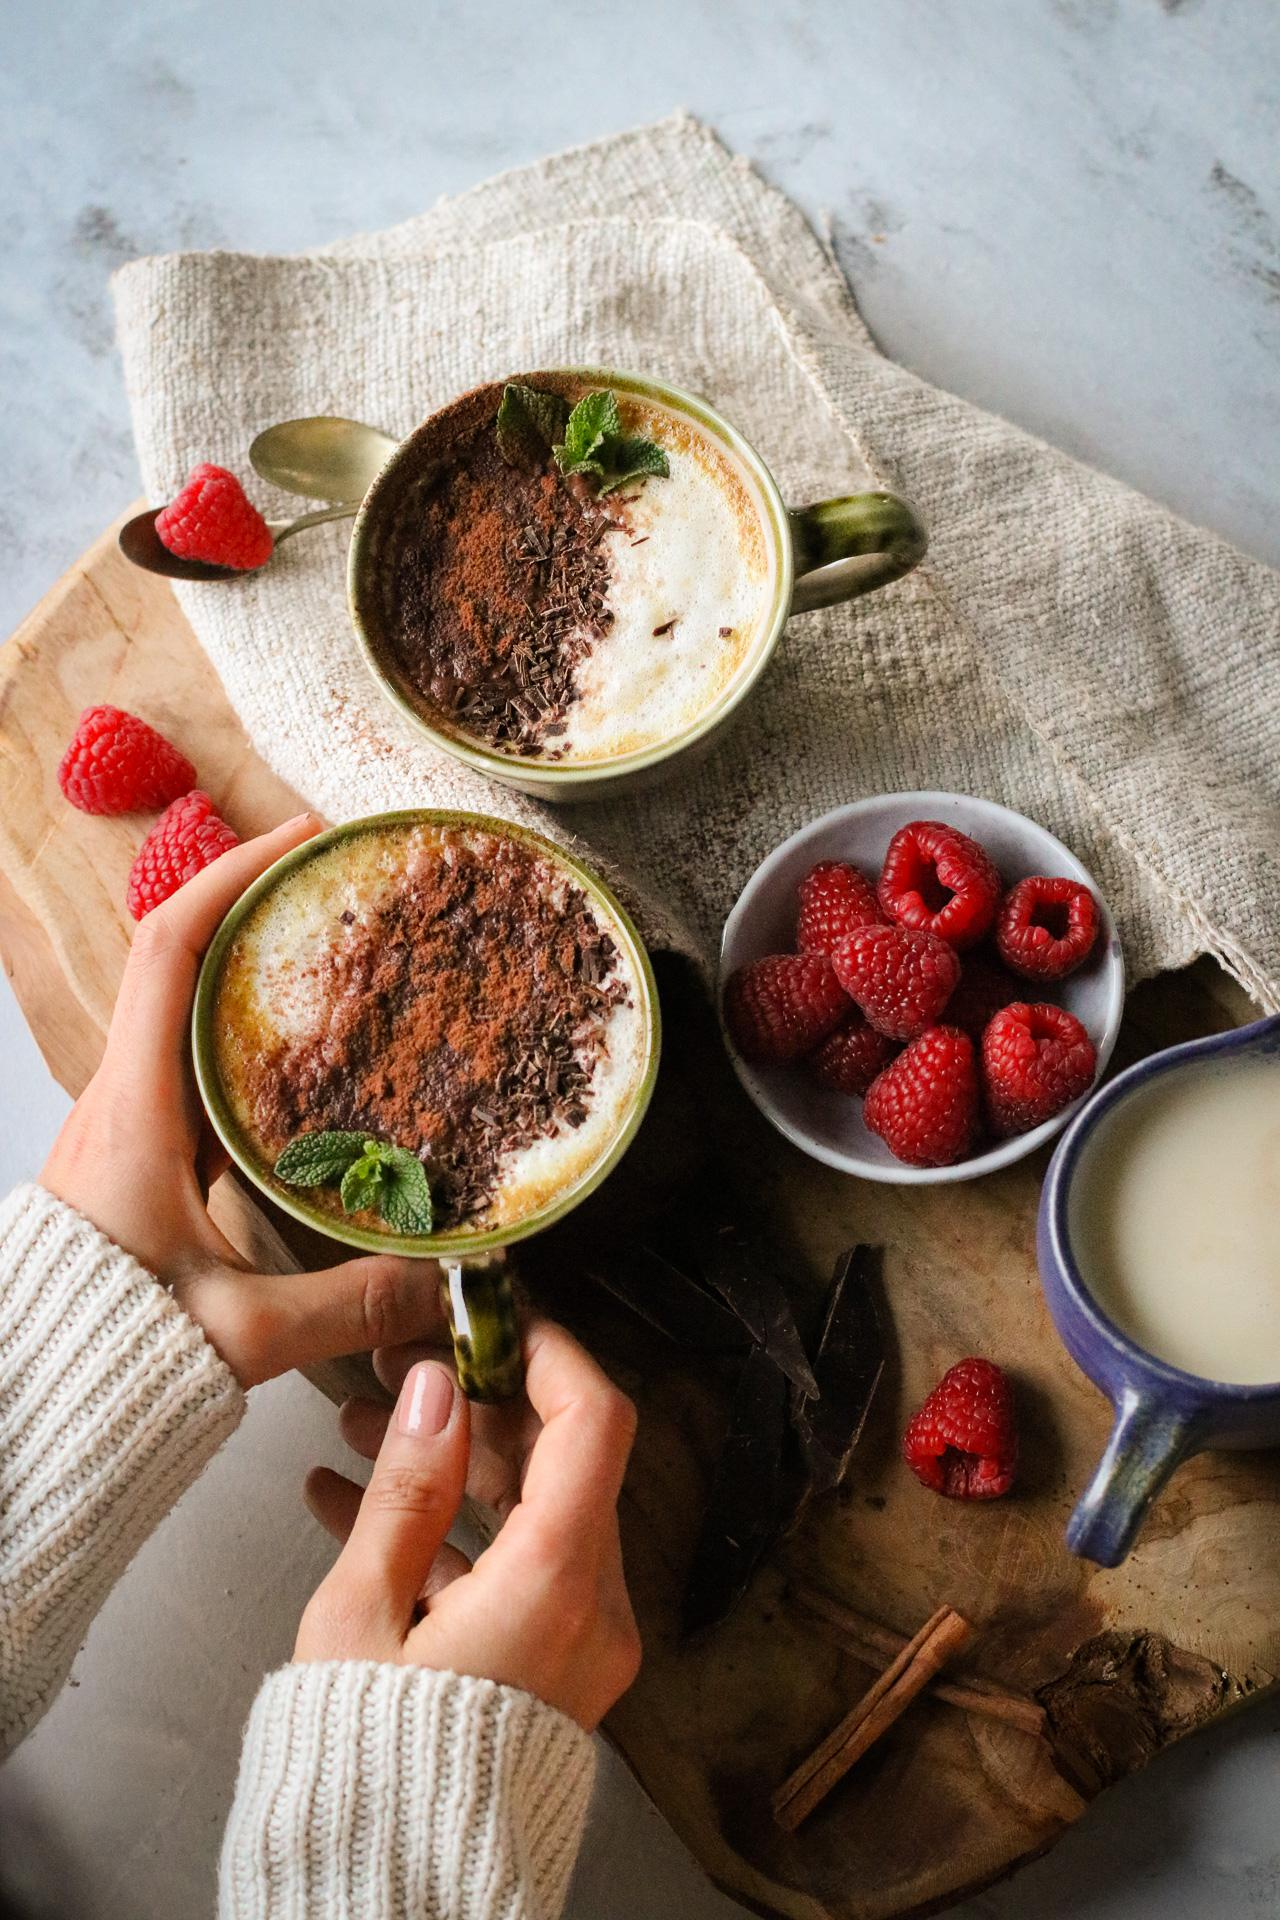 Main image of Golden Vegan Hot Chocolate